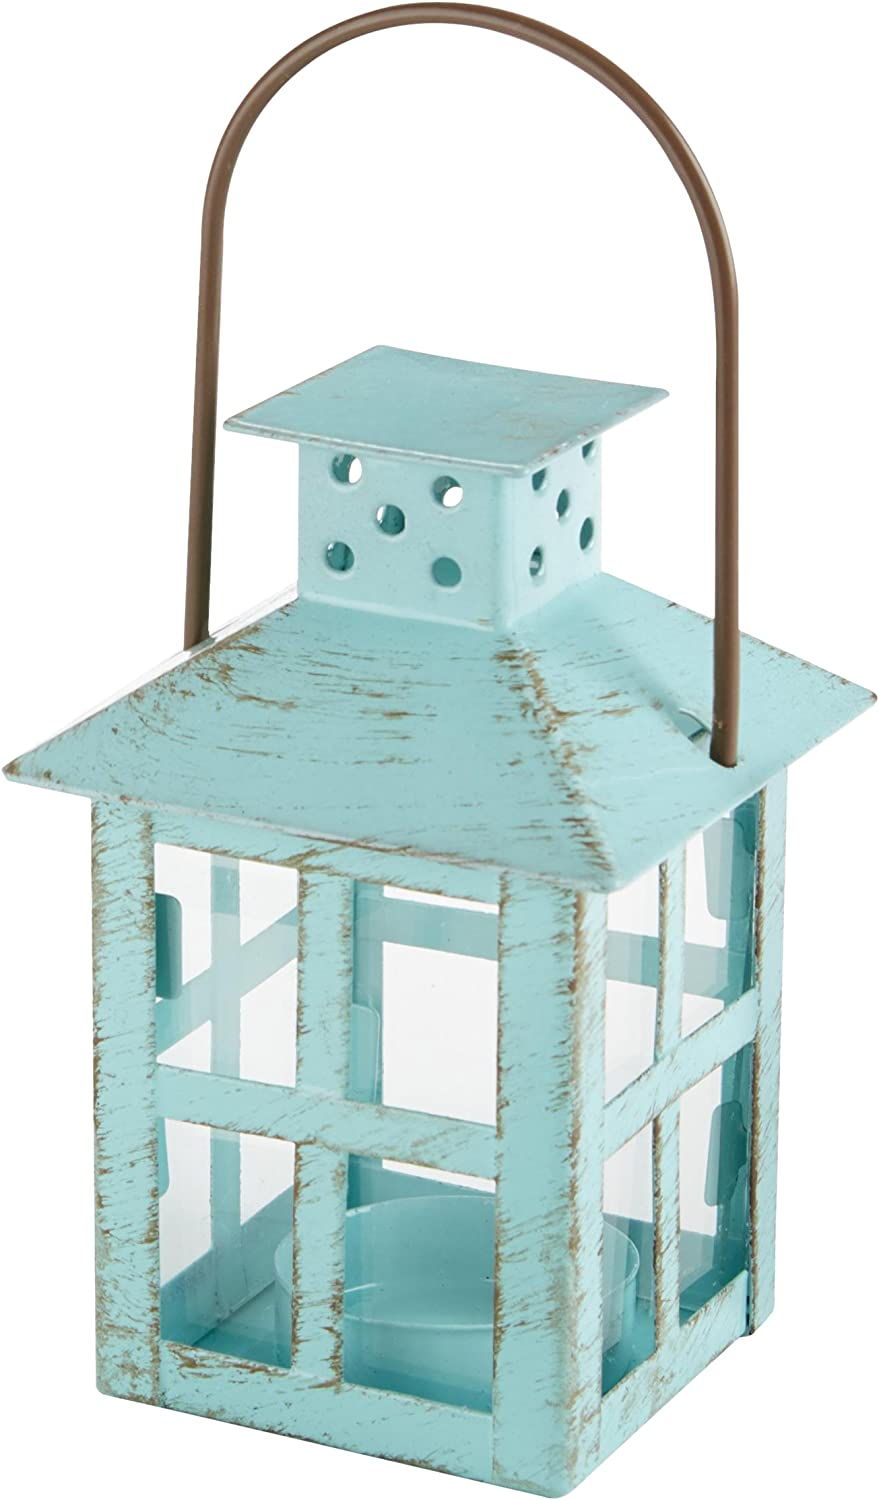 Kate Aspen, Distressed Metal Vintage Decorative Mini Lantern, Centerpiece, Party Favor, 2.5 x 2.5 x 6.5, Blue: Home & Kitchen